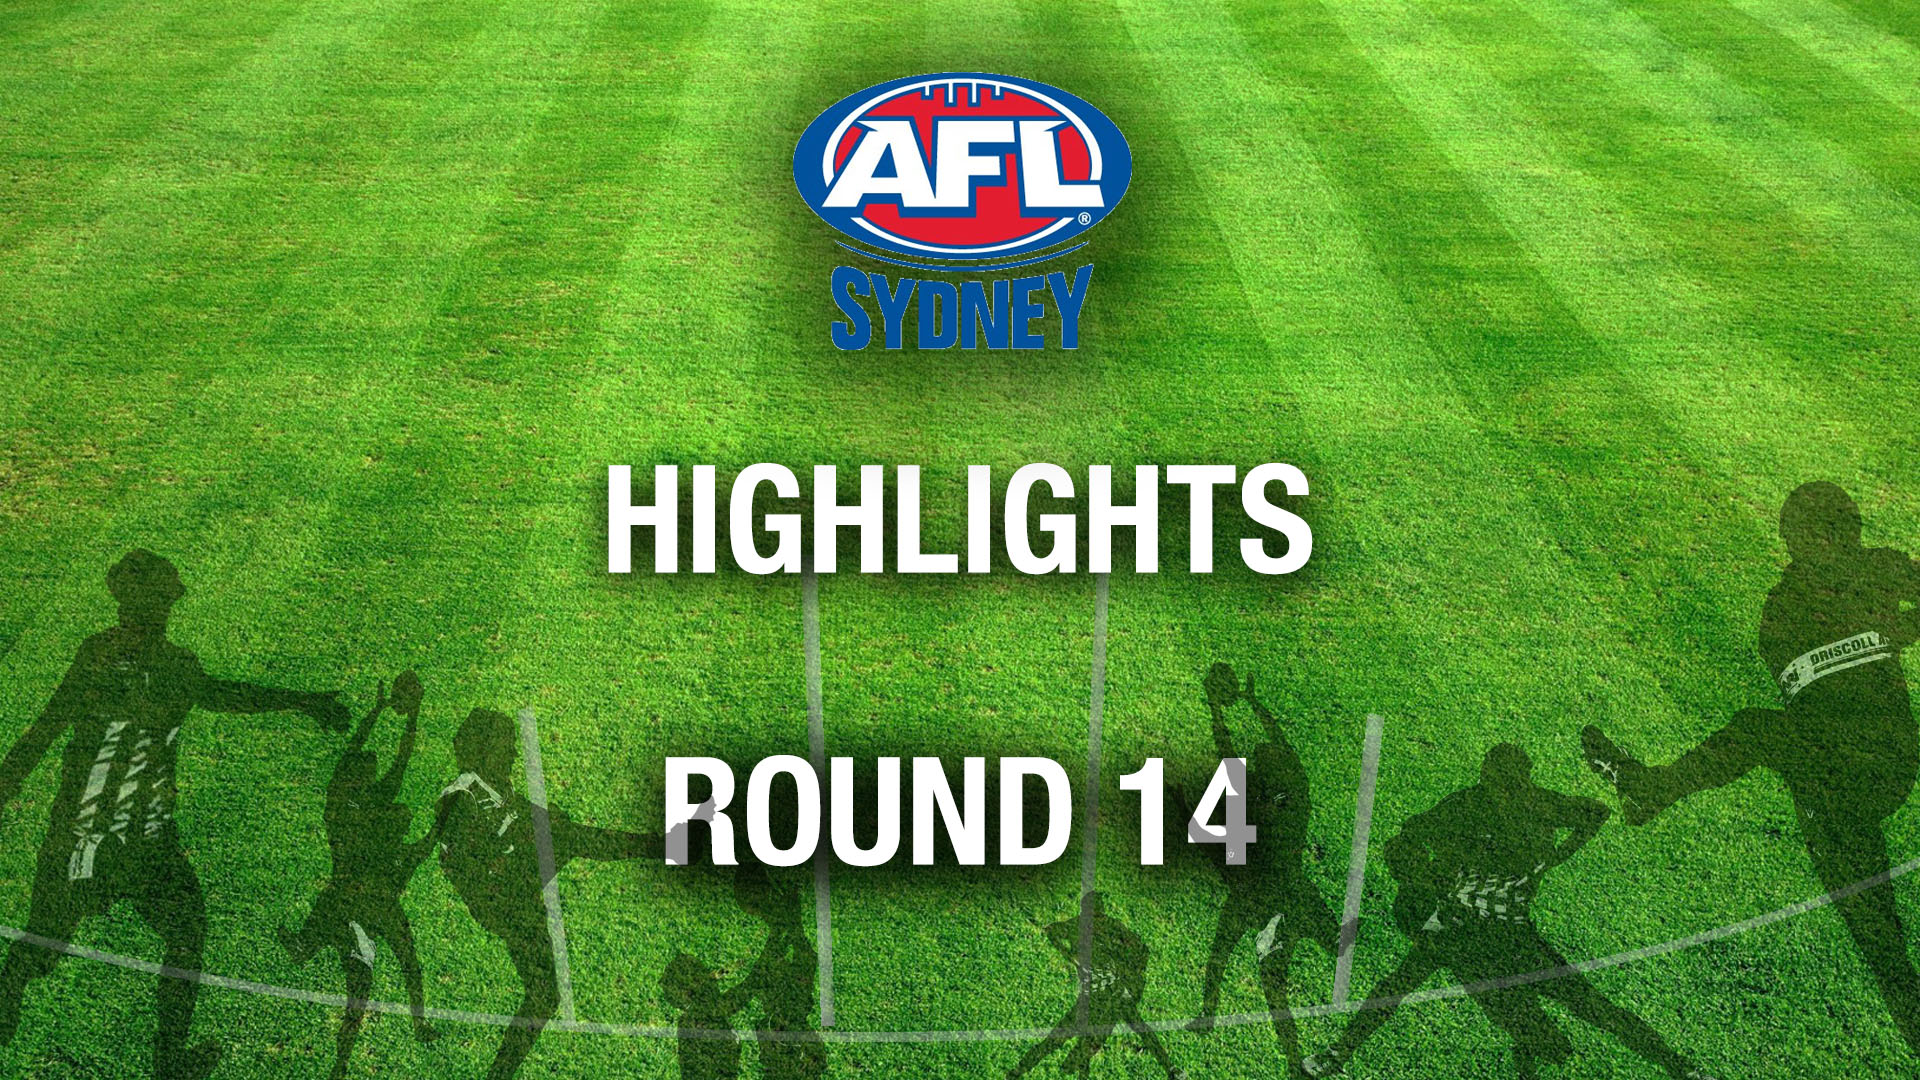 AFL SYDNEY 2018 RD14 HIGHLIGHTS